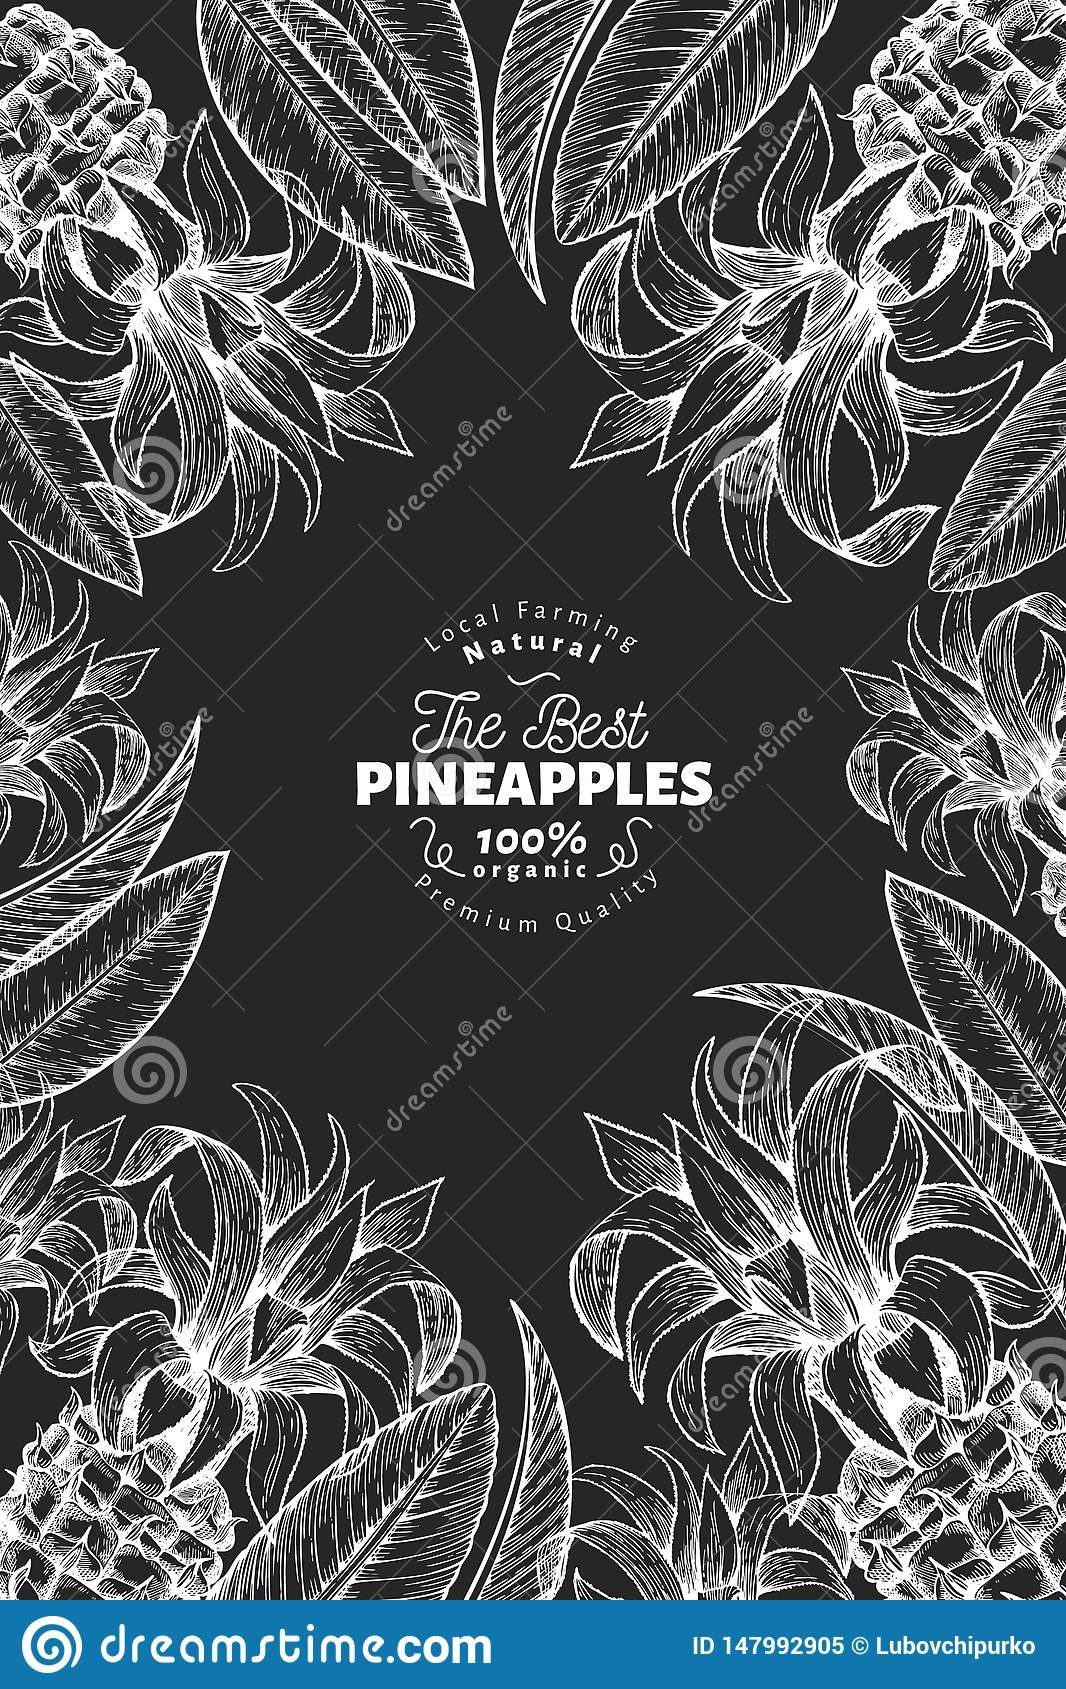 Pineapples and tropical leaves design template. Hand drawn tropical fruit illustration on chalk board. Engraved style